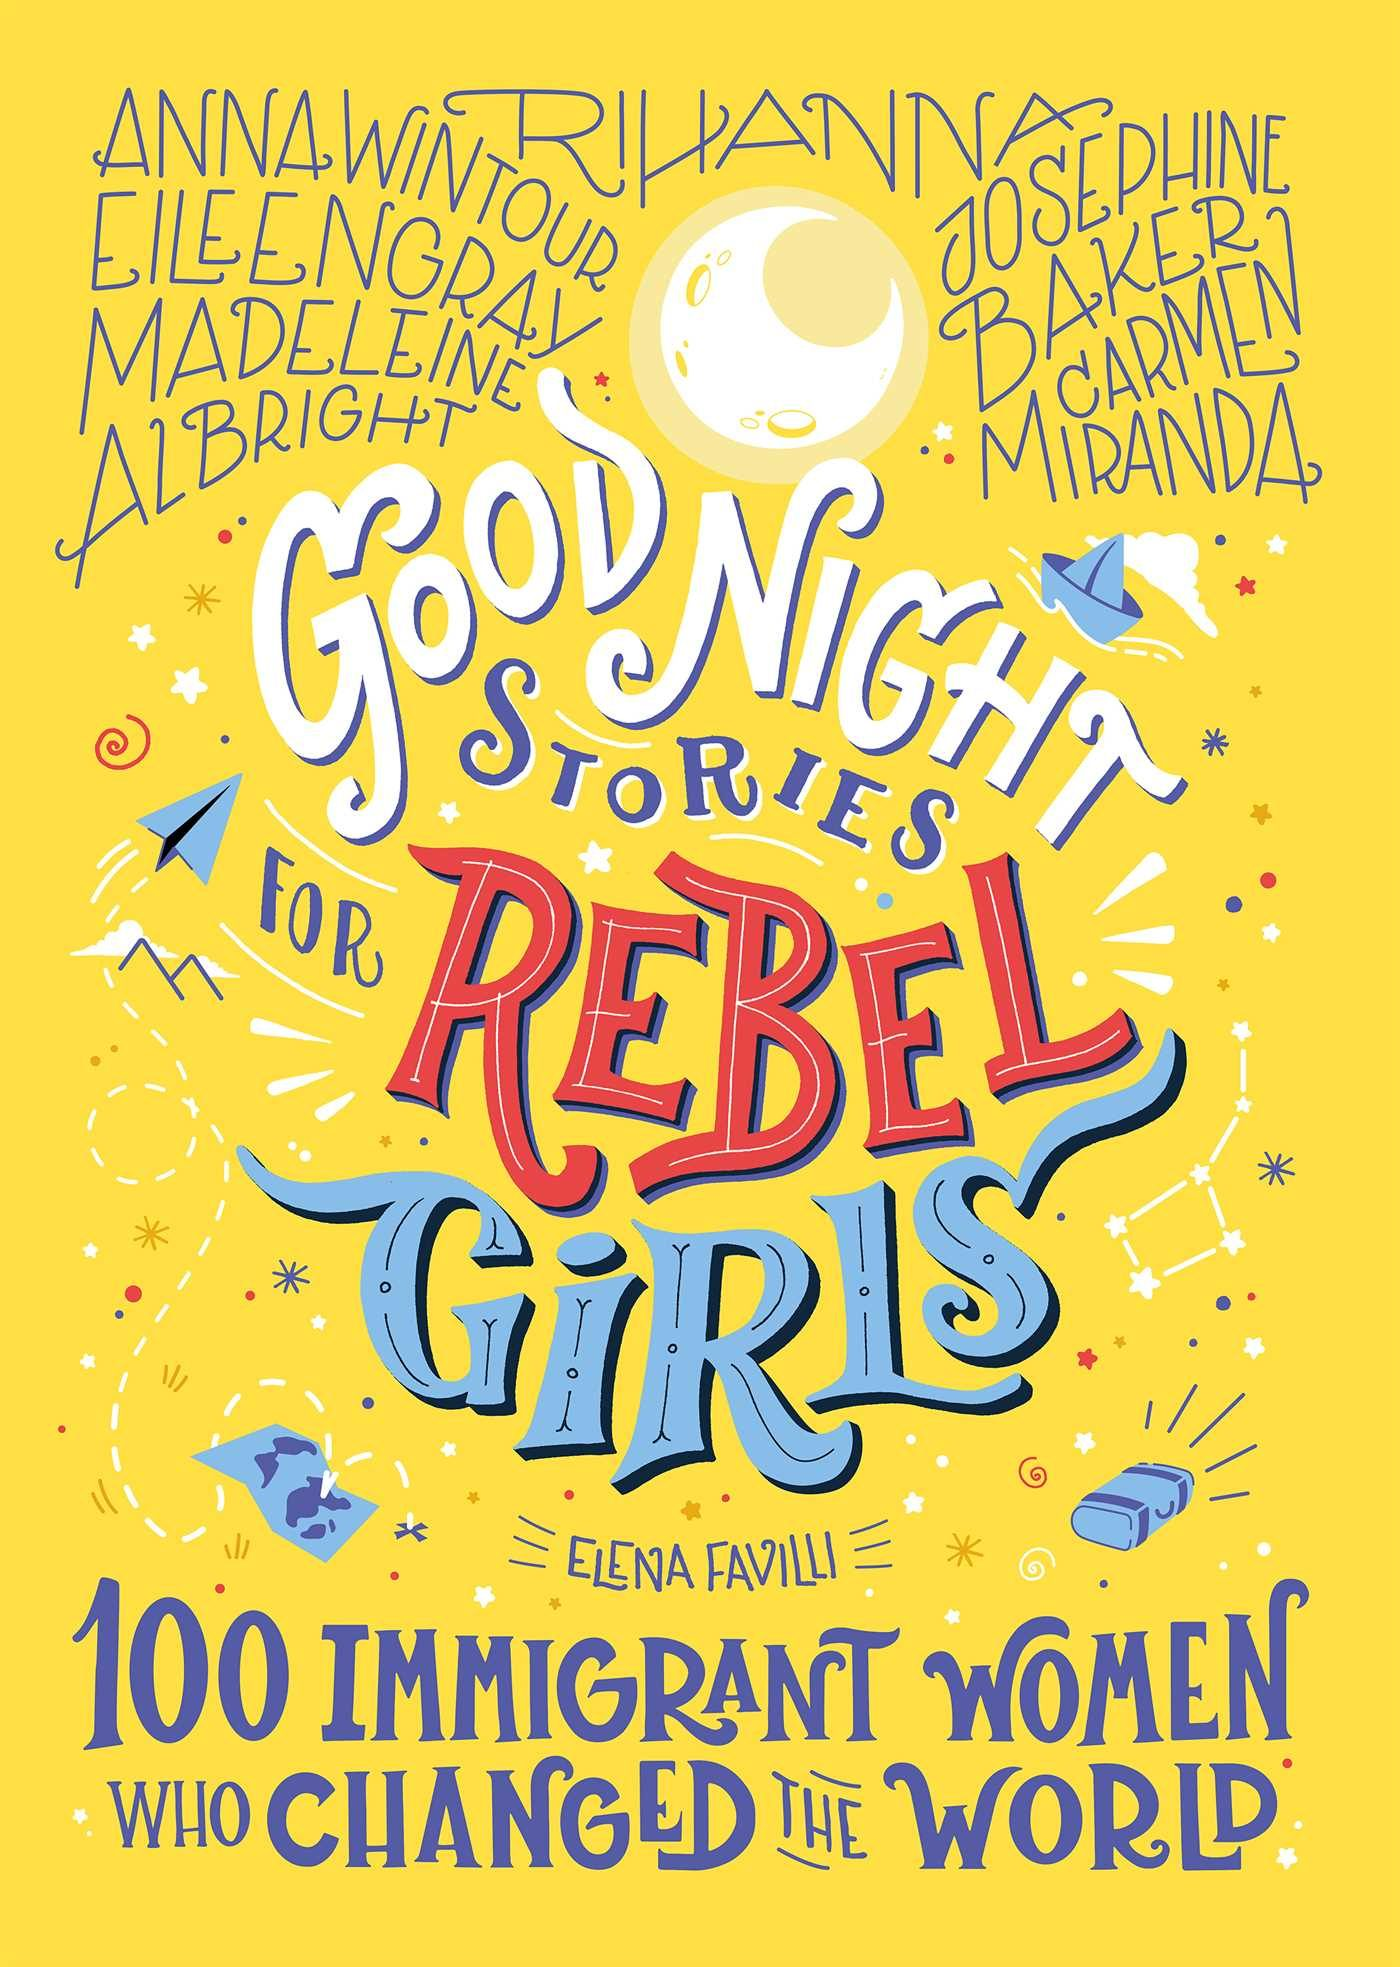 Good Night Stories For Rebel Girls By Elena Favilli Release Date? 2020 Nonfiction & Biography Releases